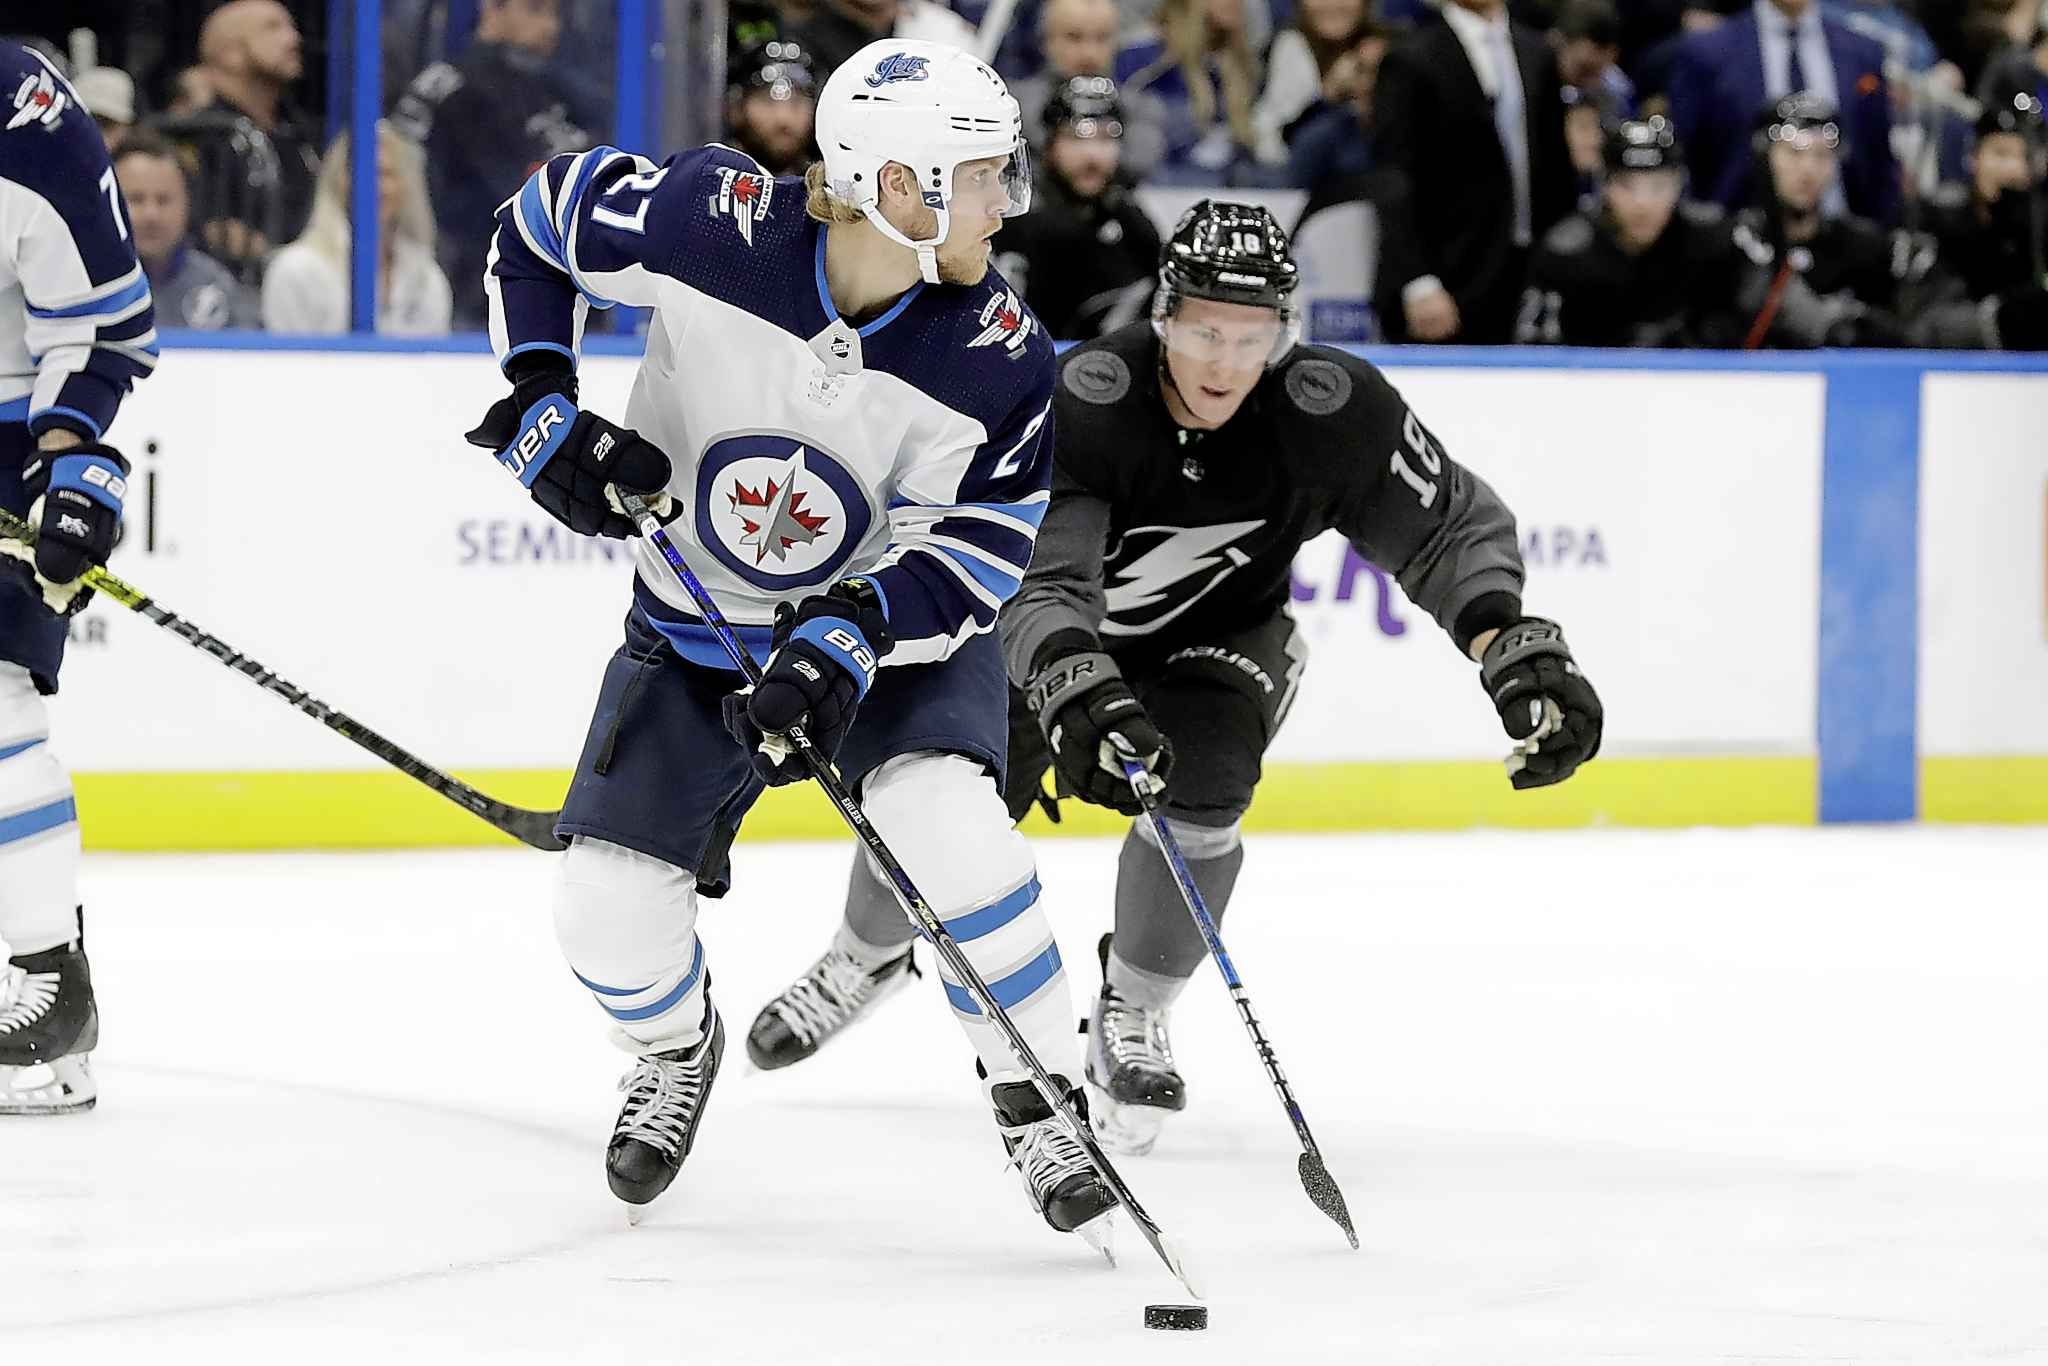 Jets keep Lightning at bay with 4-3 win